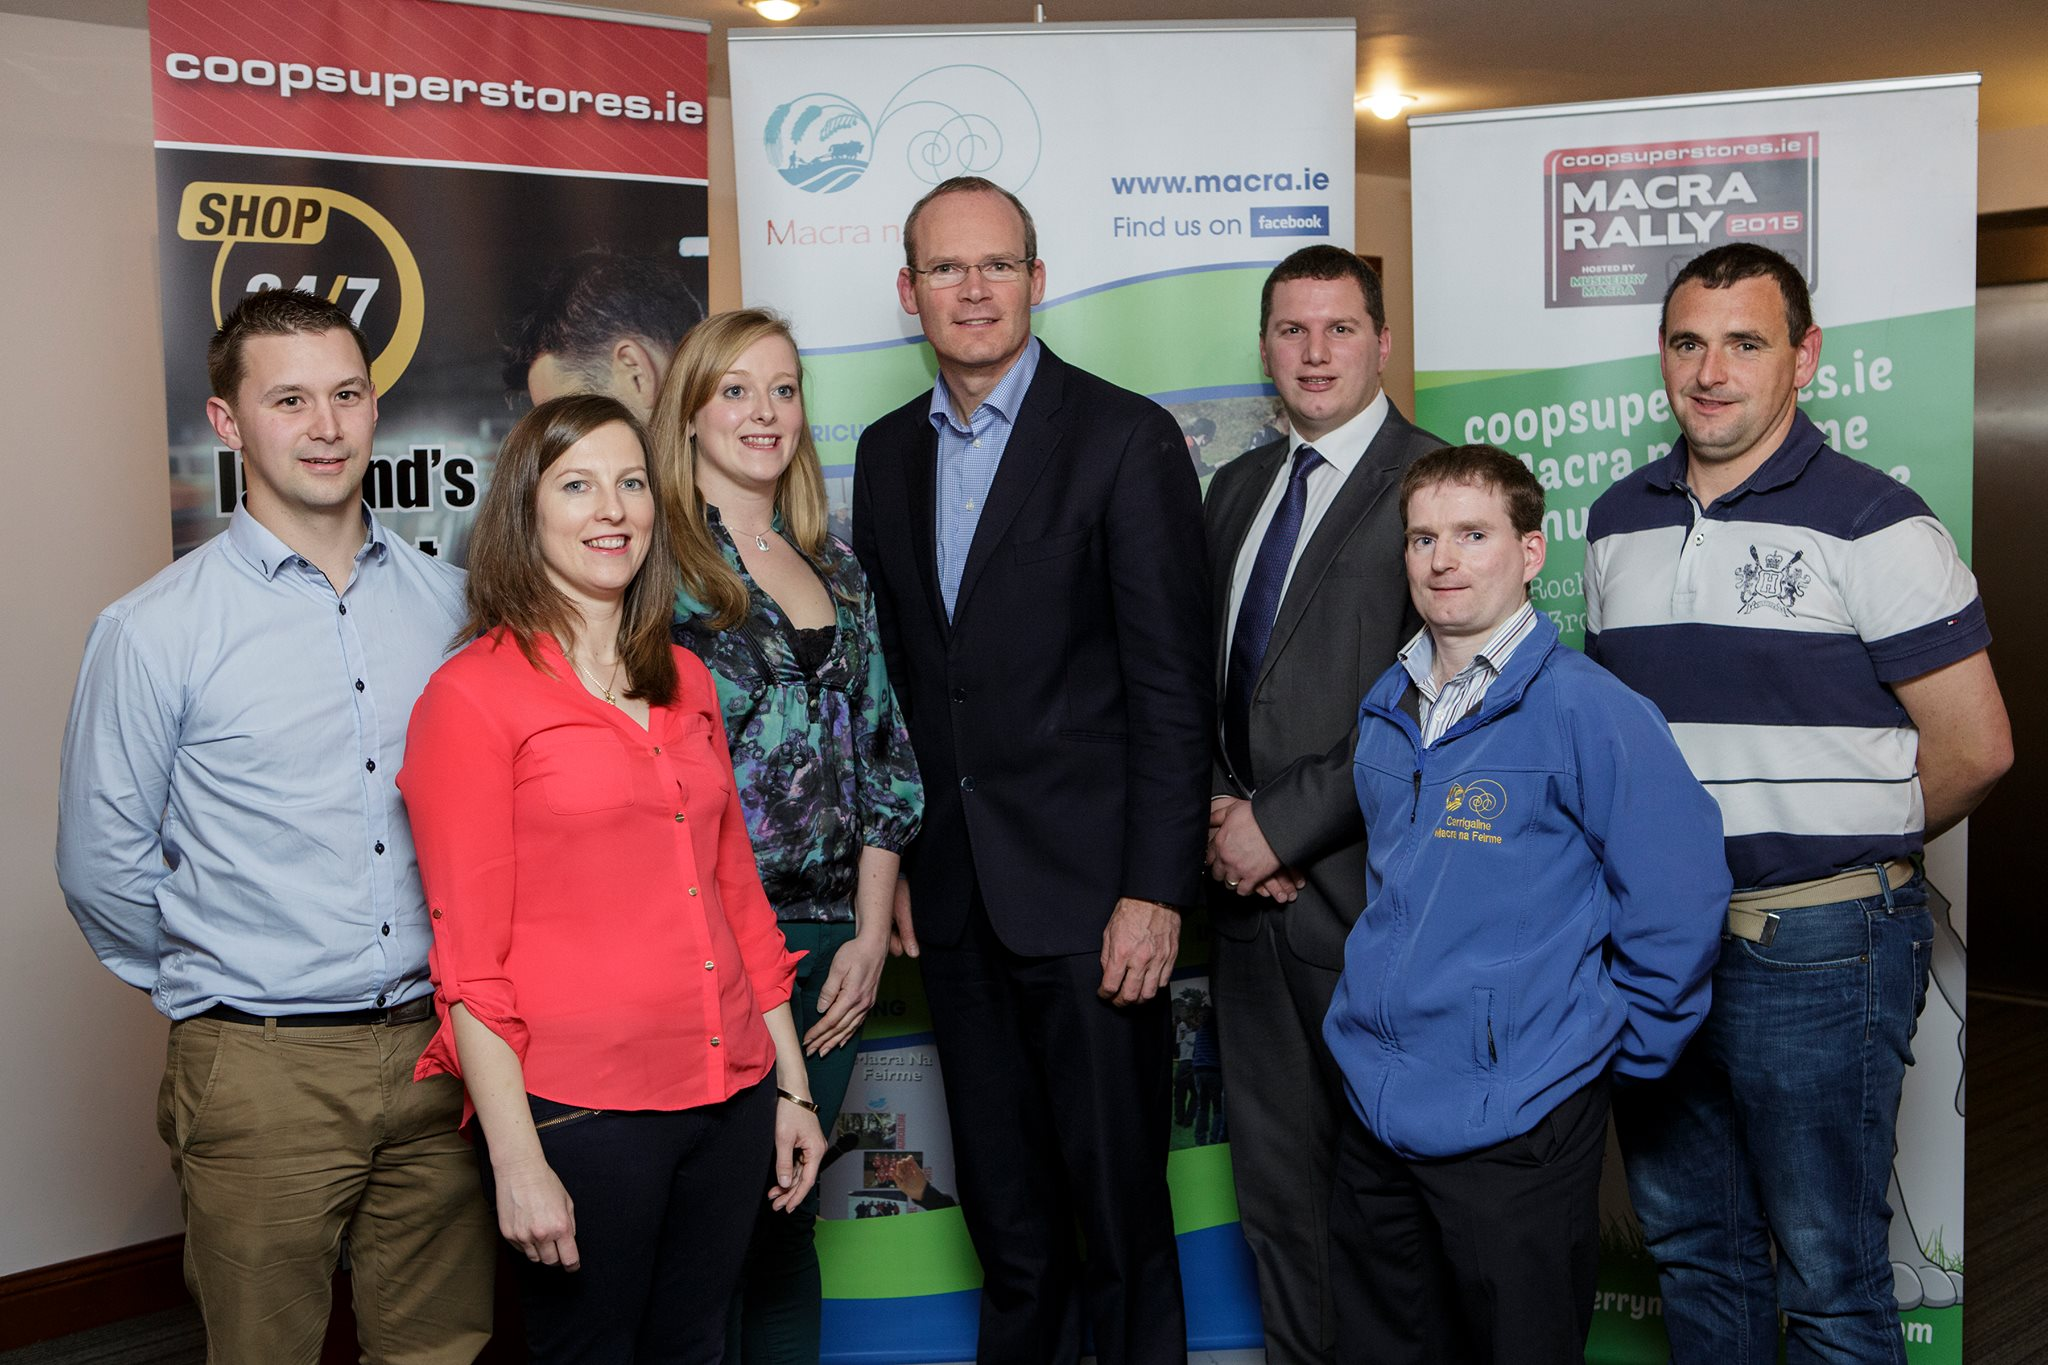 Carrigaline Macra to host annual Agri Conference with Minister Simon Coveney